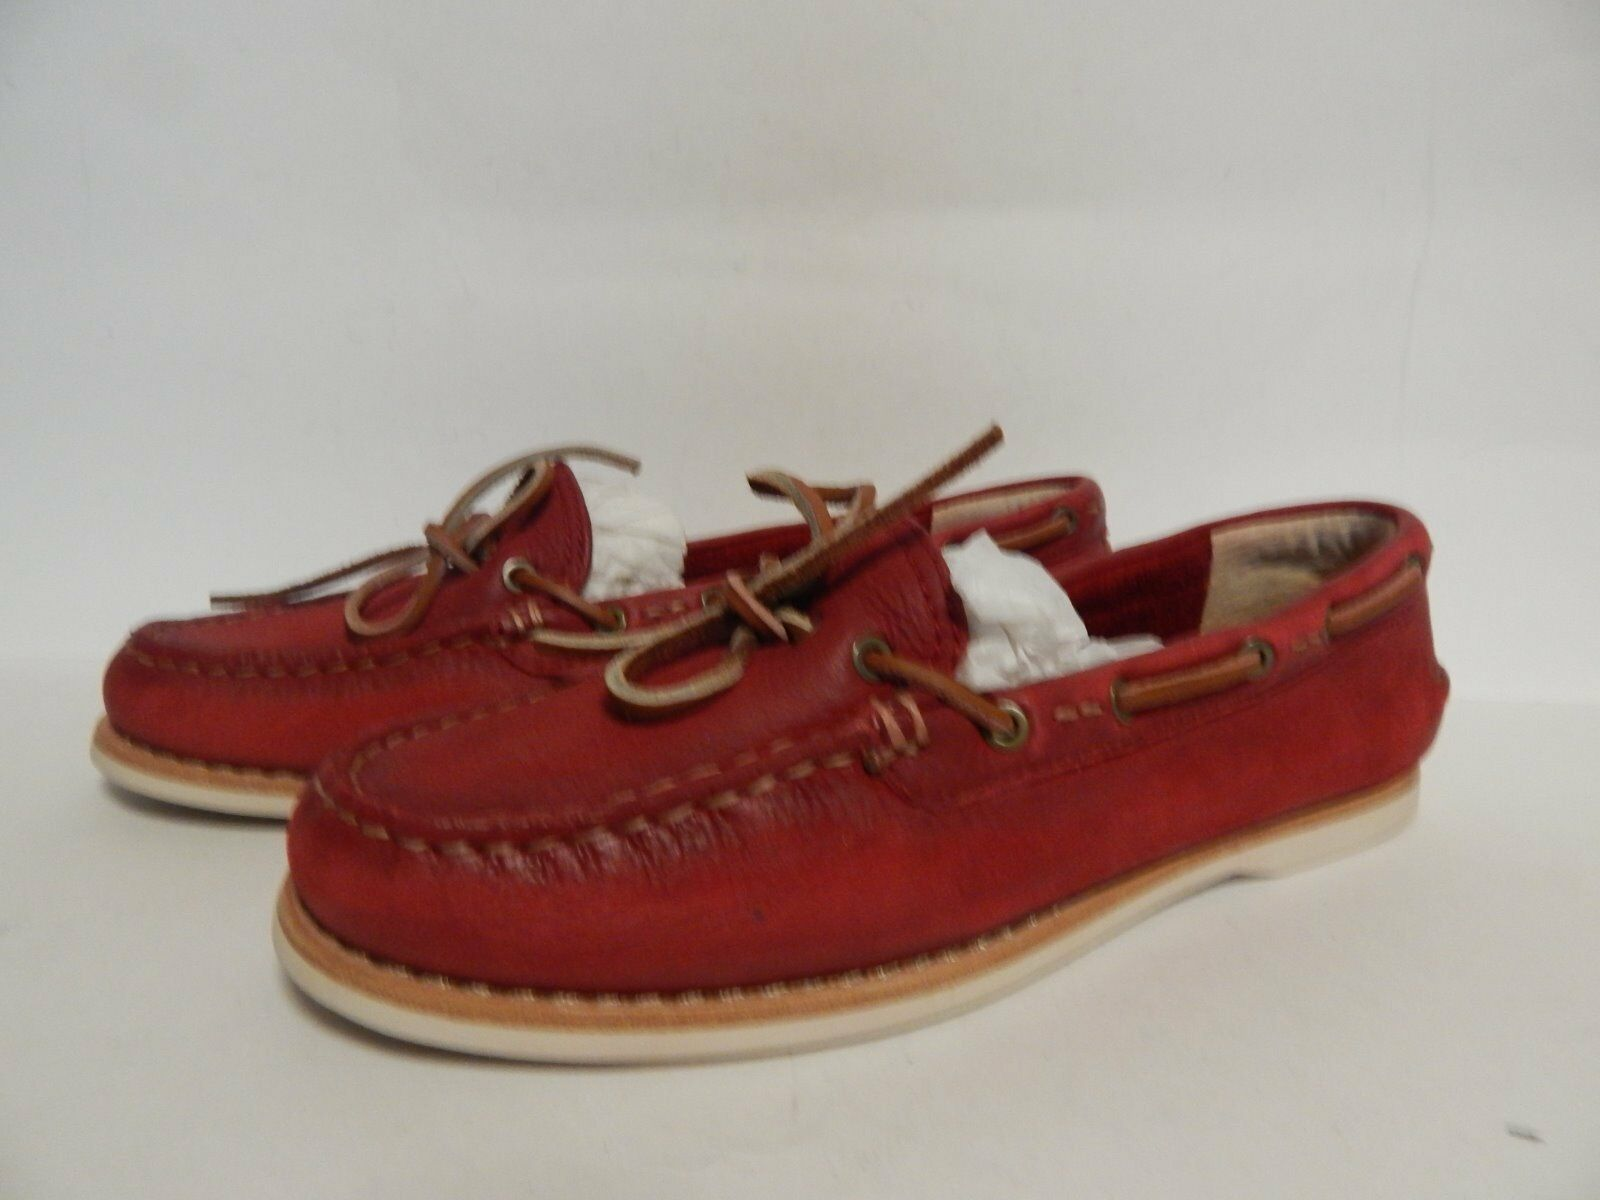 FRYE Quincy Tie Met Loafer 6.5 M Red Pelle New  New Pelle with Box 9e7d56